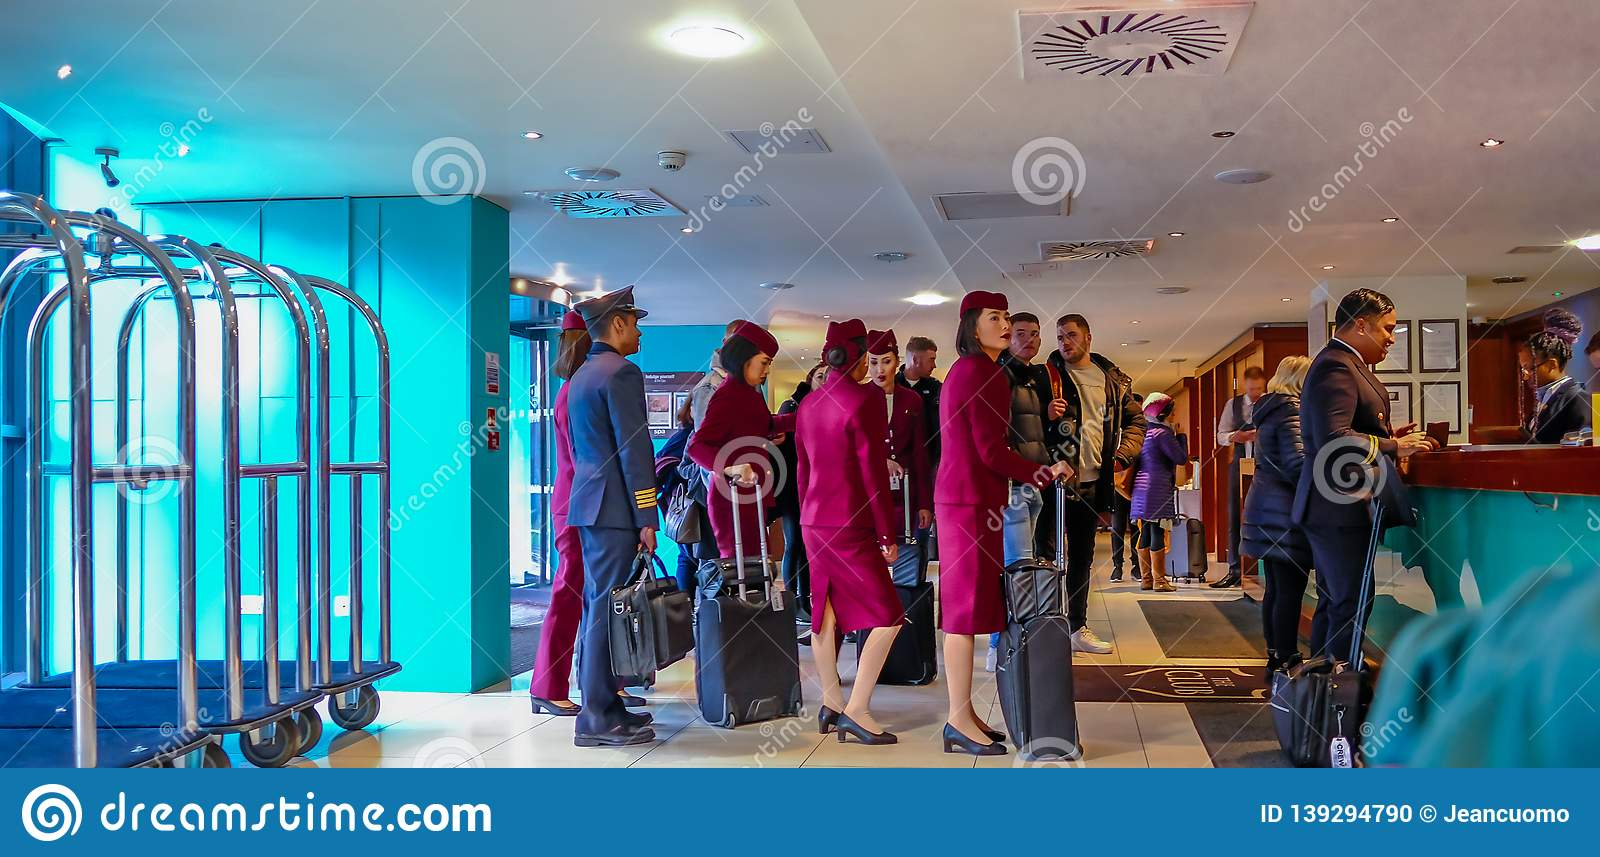 Cabin crew checking into their overnight stop off. Shows crew queing up to check in